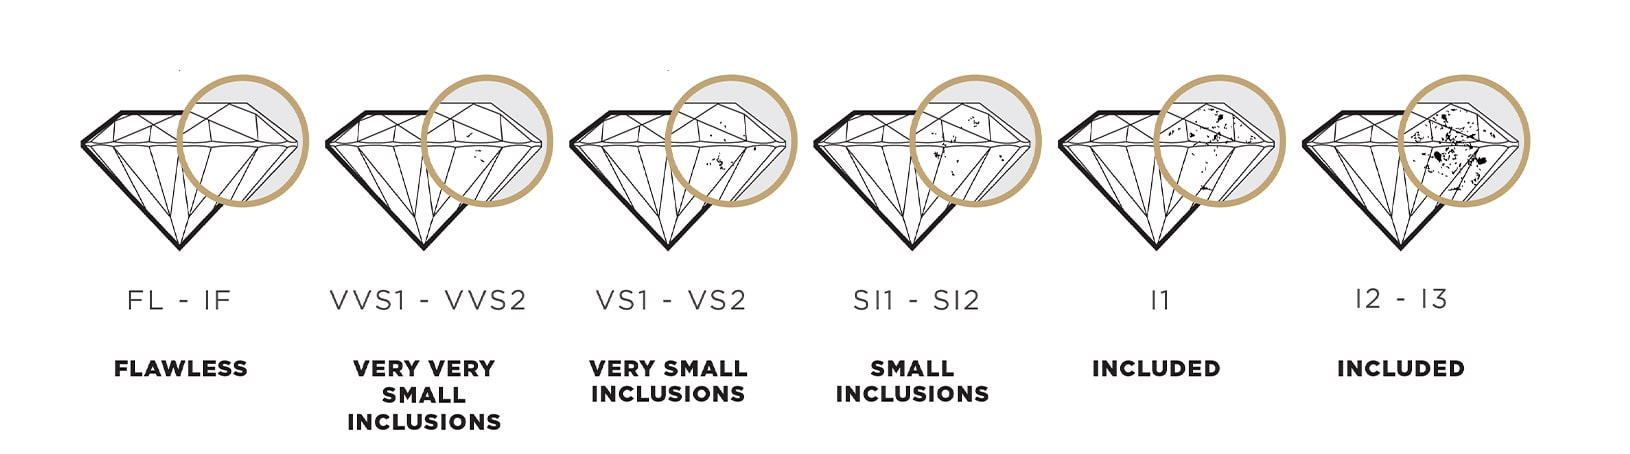 An image of the Diamond Clarity Scale